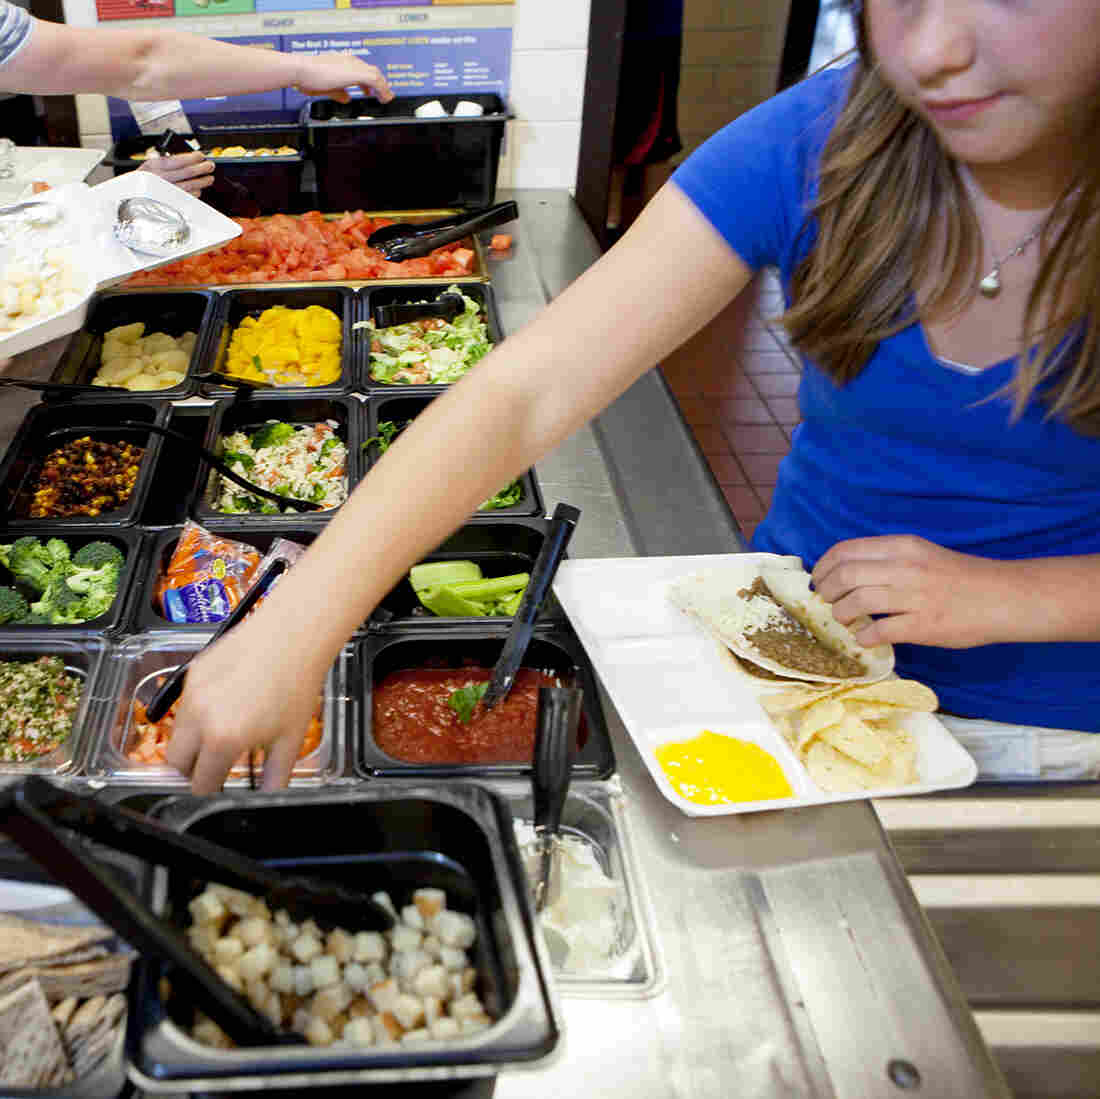 Food Fight Fizzles As Senate Nears Compromise On School Nutrition Rules